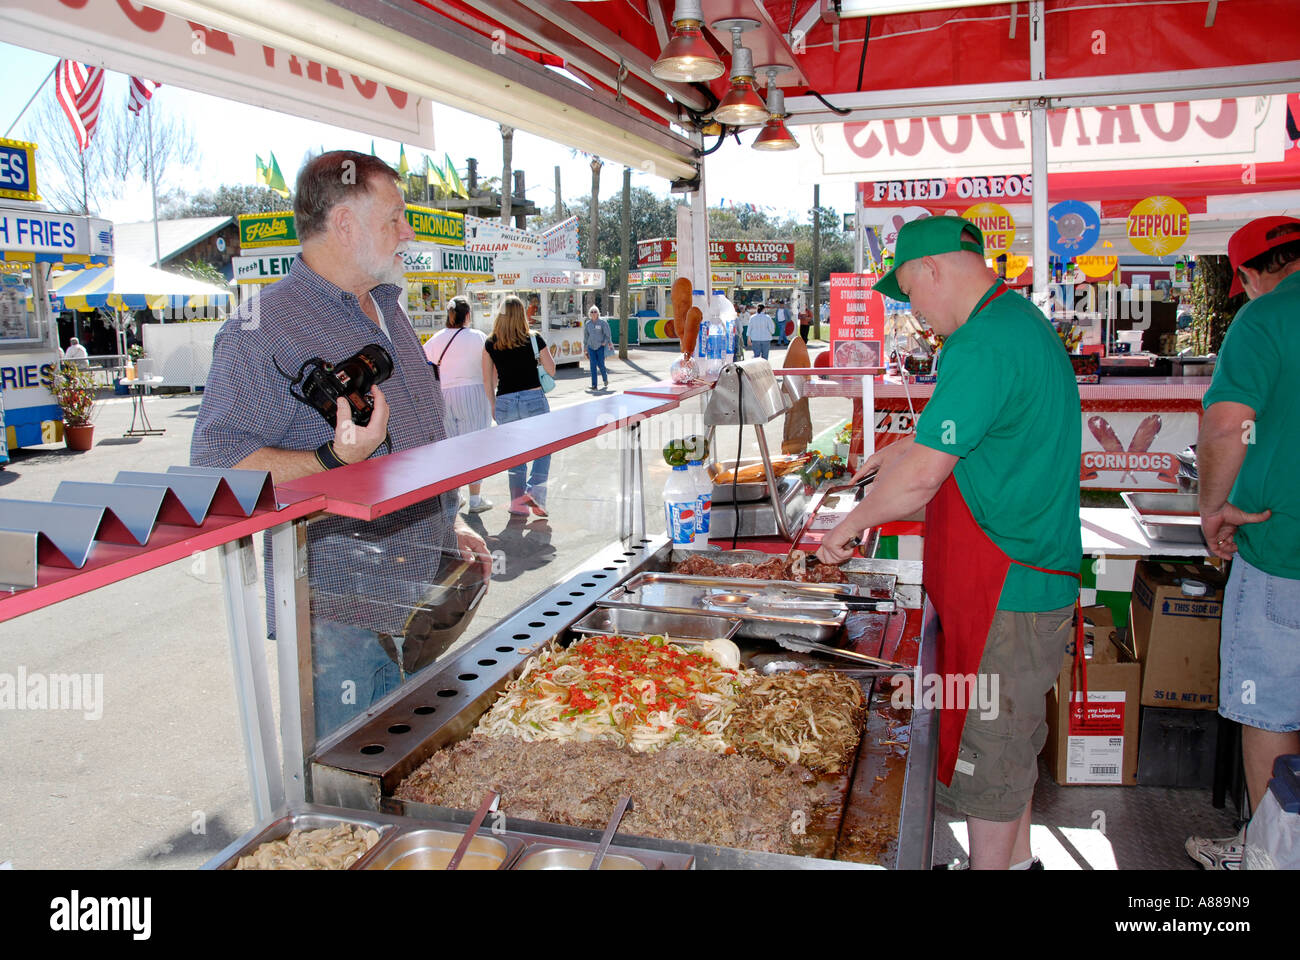 Food eating establishments at the Florida State Fair - Stock Image